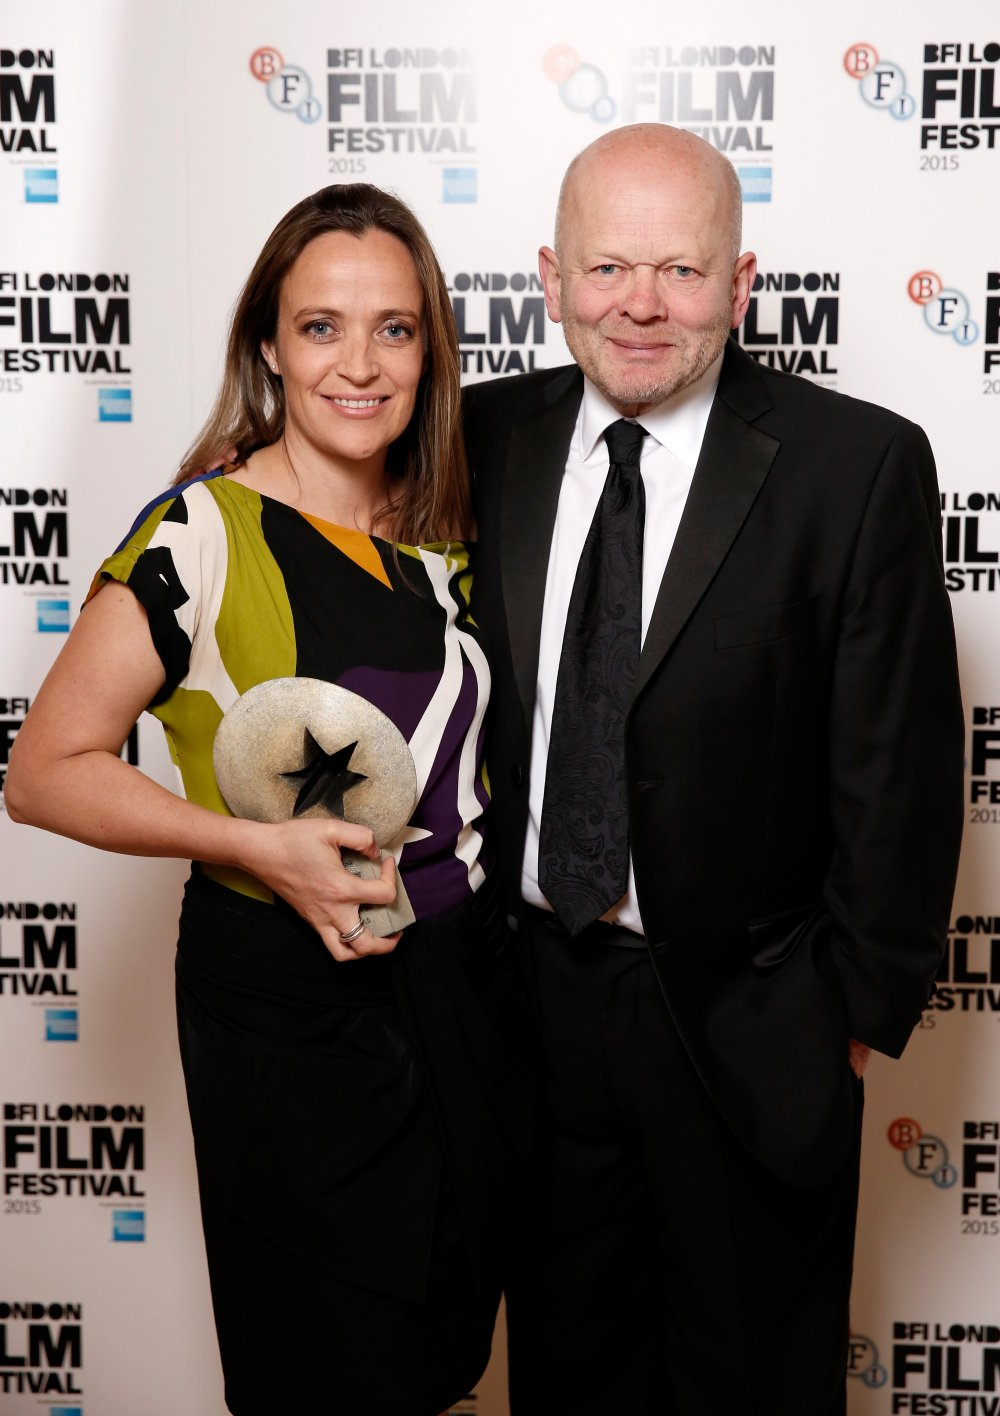 Sherpa director Jennifer Peedom and producer John Smithson with their award for Best Documentary